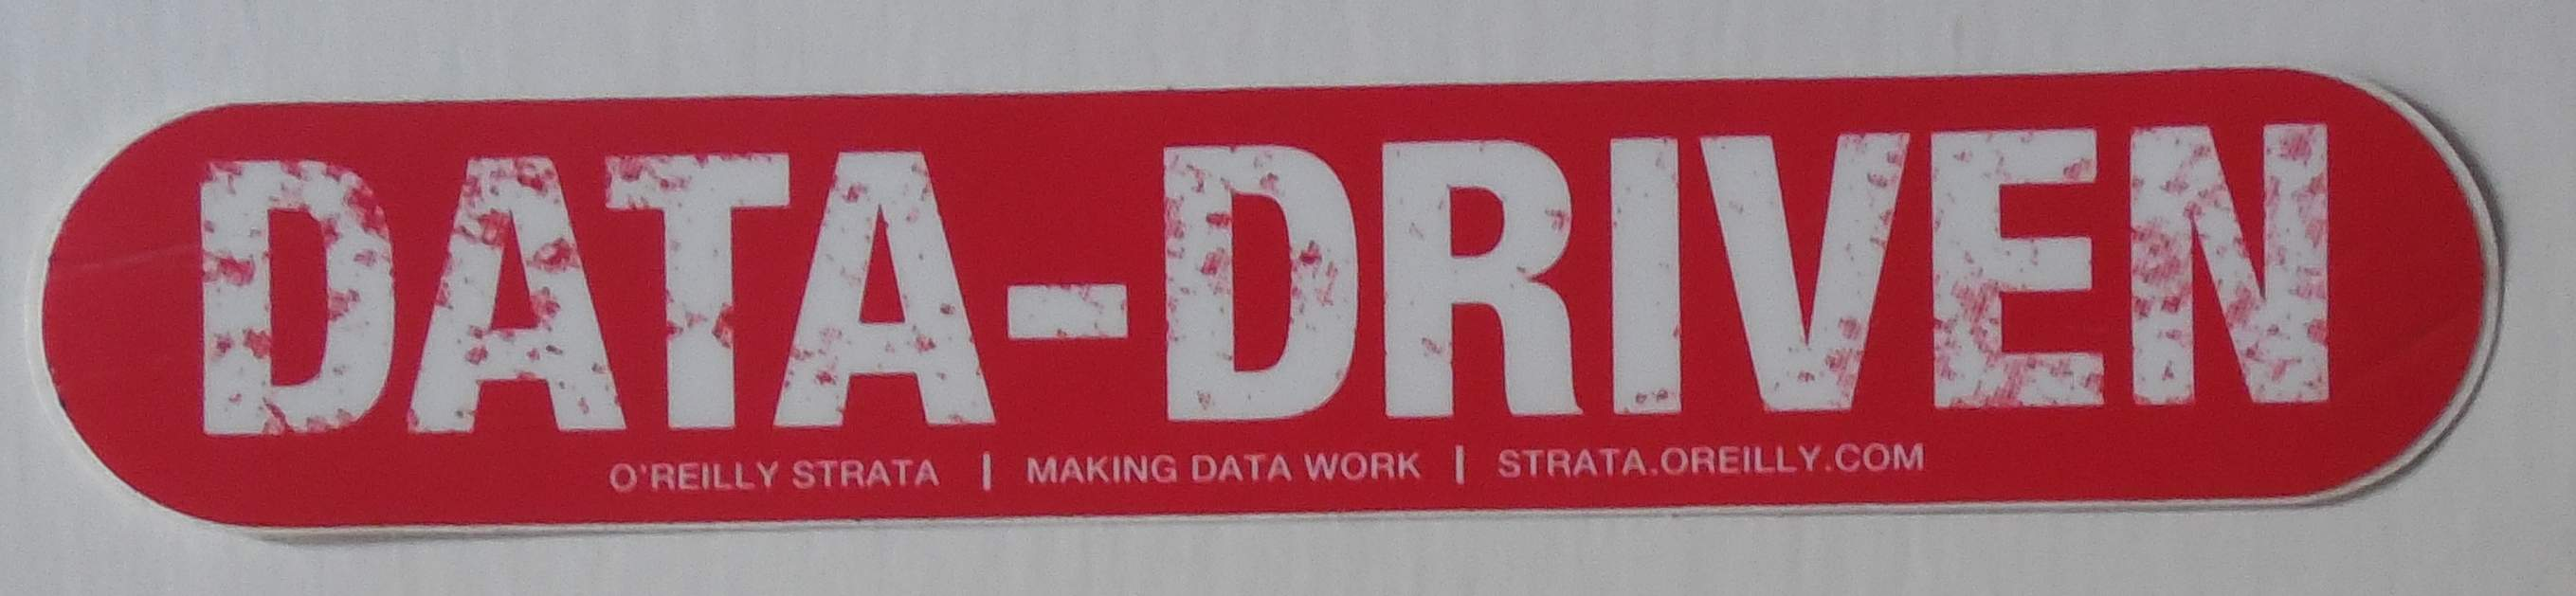 O'Reilly laptop sticker